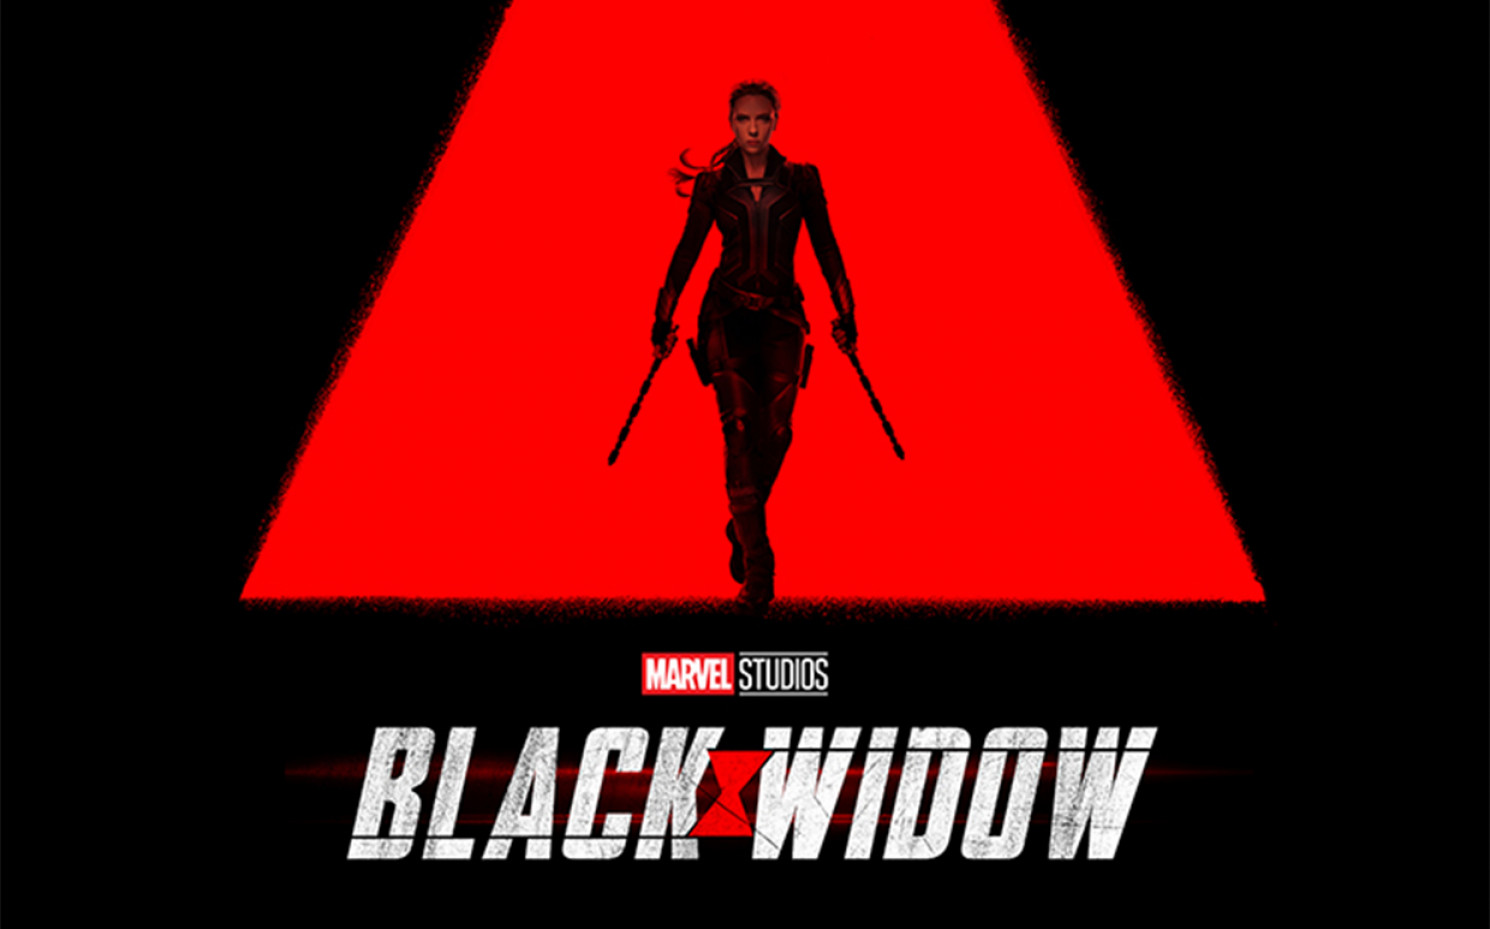 Am 30. April 2020 geht es für Black Widow ins Kino | © Marvel Studios / Walt Disney